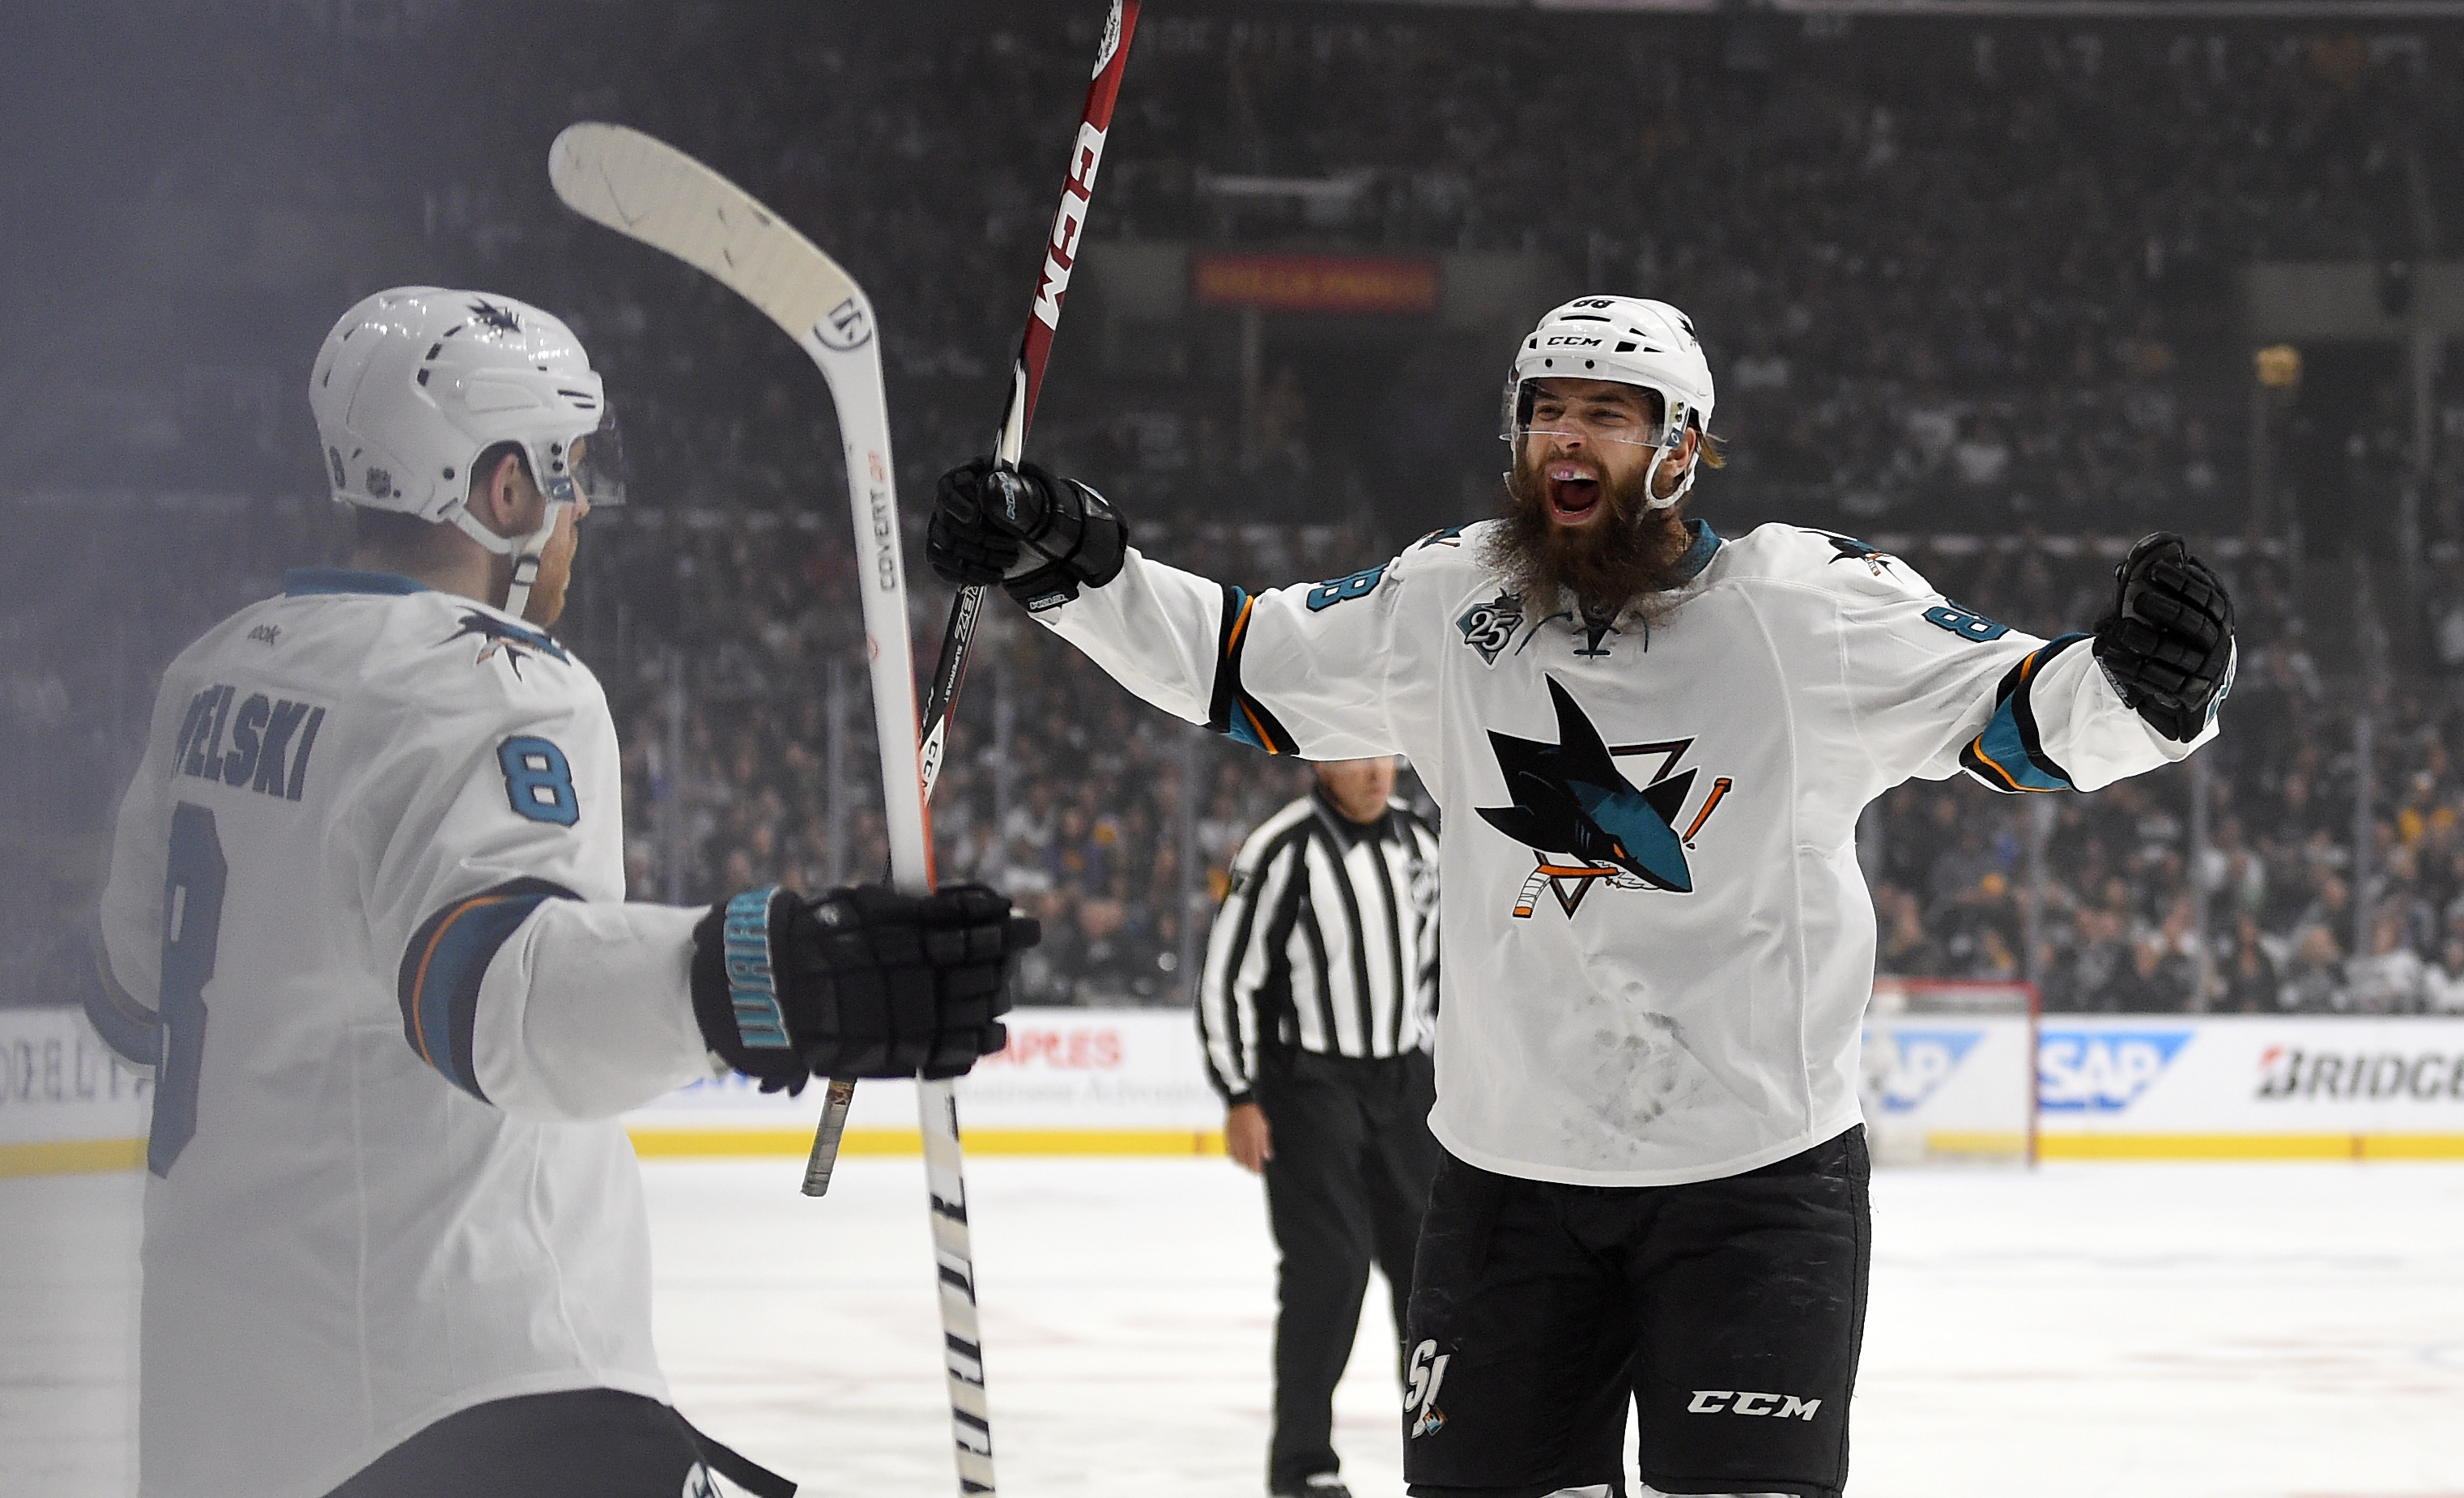 San Jose Sharks center Joe Pavelski, left, celebrates his goal with defenseman Brent Burns during the first period of Game 2 in an NHL hockey Stanley Cup playoffs first-round series against the Los Angeles Kings, Saturday, April 16, 2016, in Los Angeles.